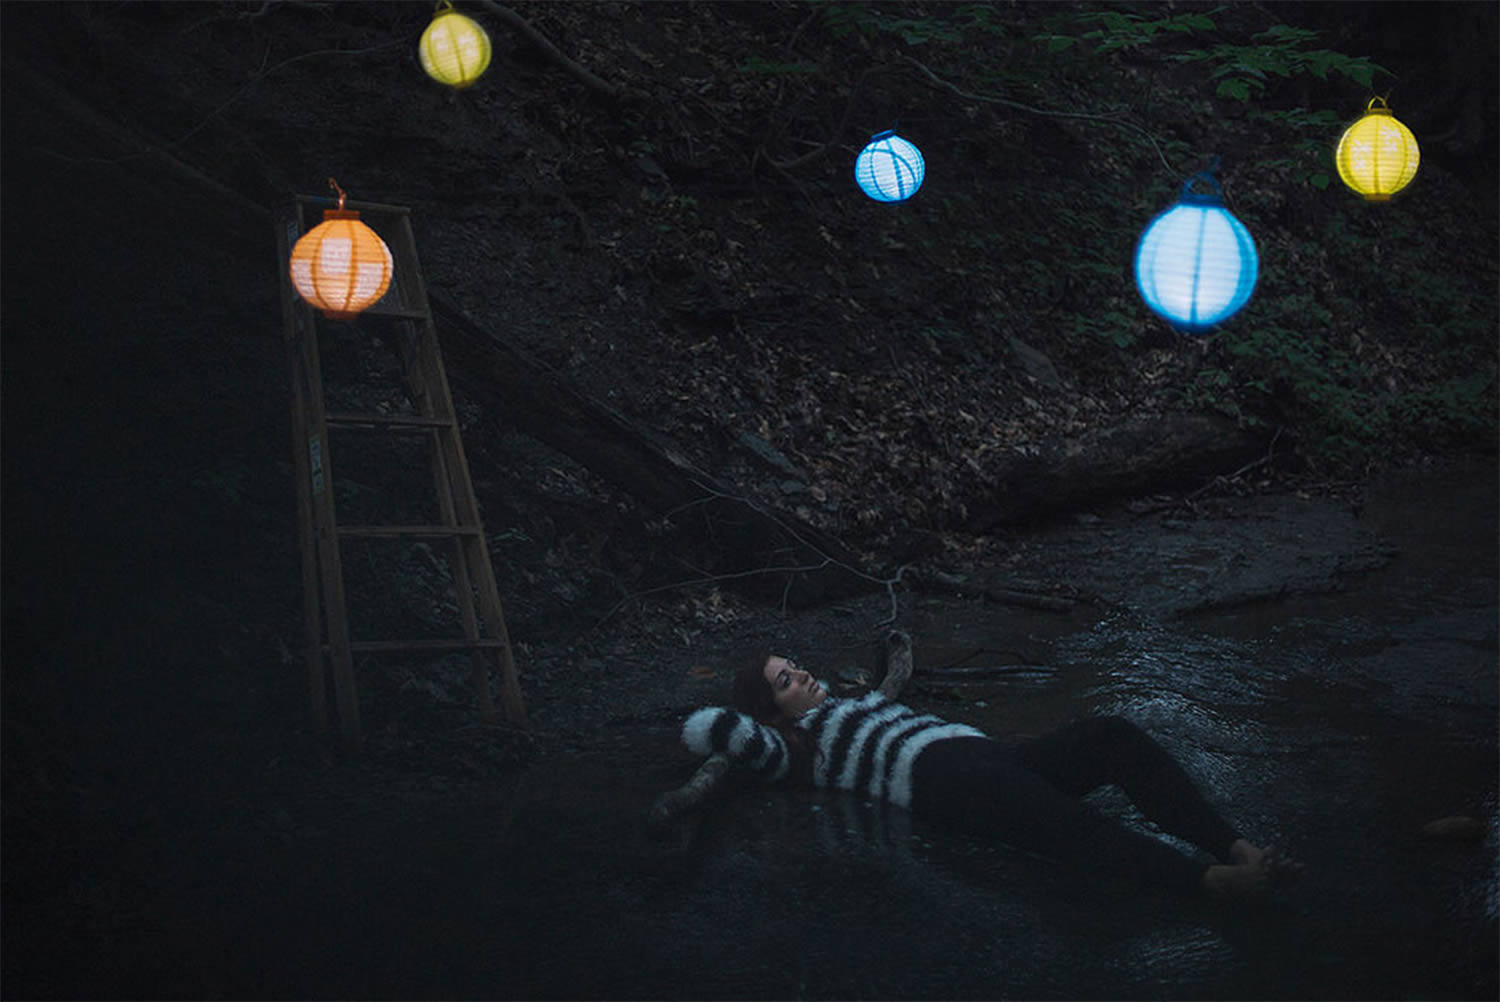 colored laterns in night sky. Girl laying down, alex currie